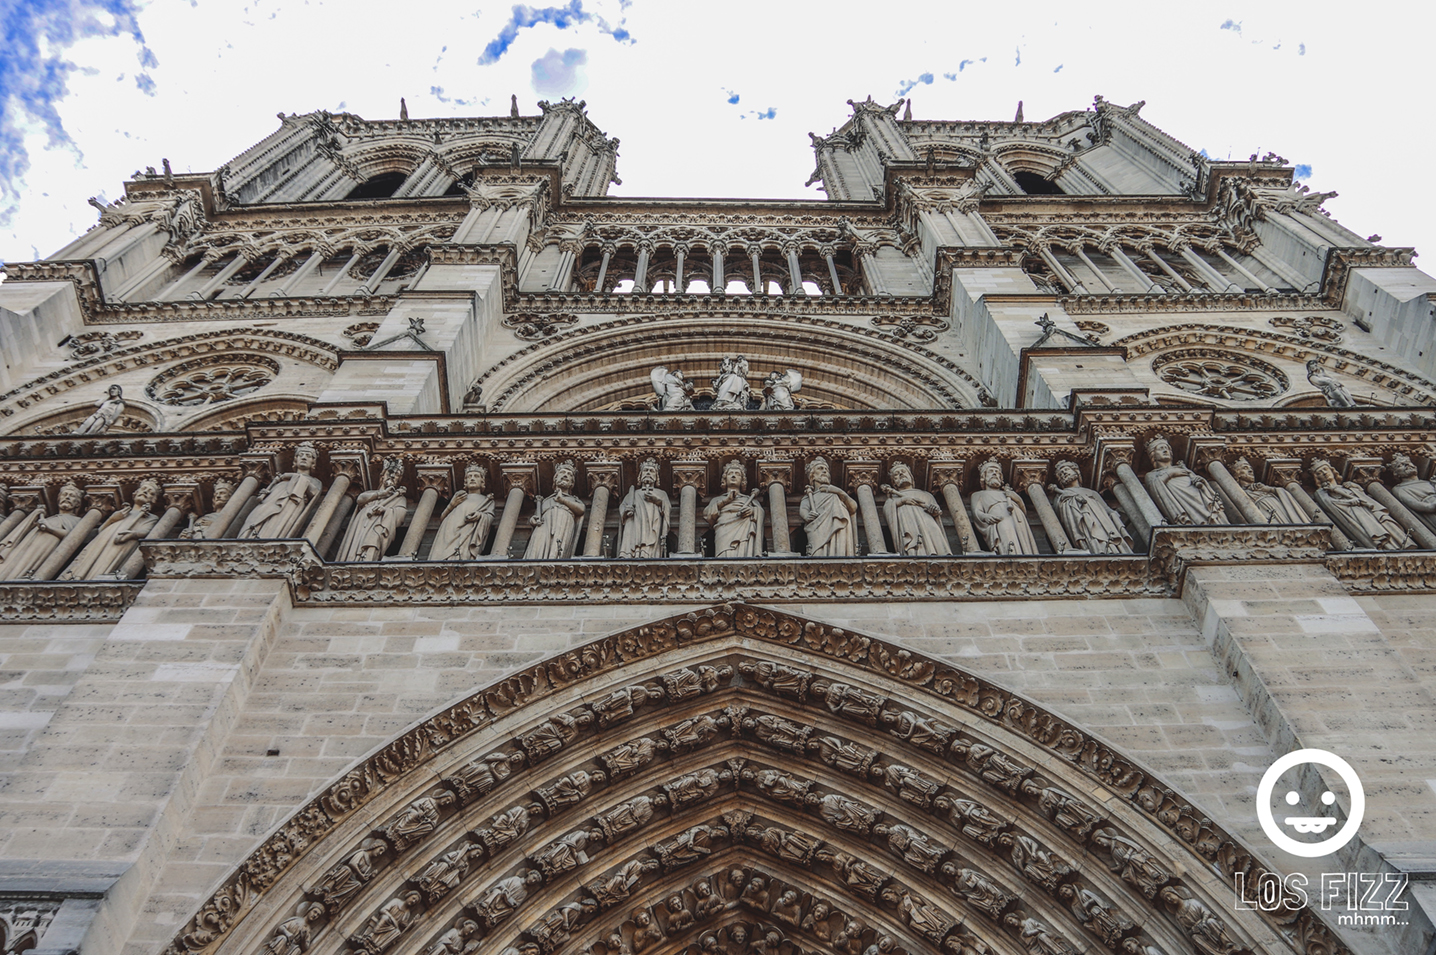 Front of Notre Dame cathedral in Paris, France Photo By LosFizz.